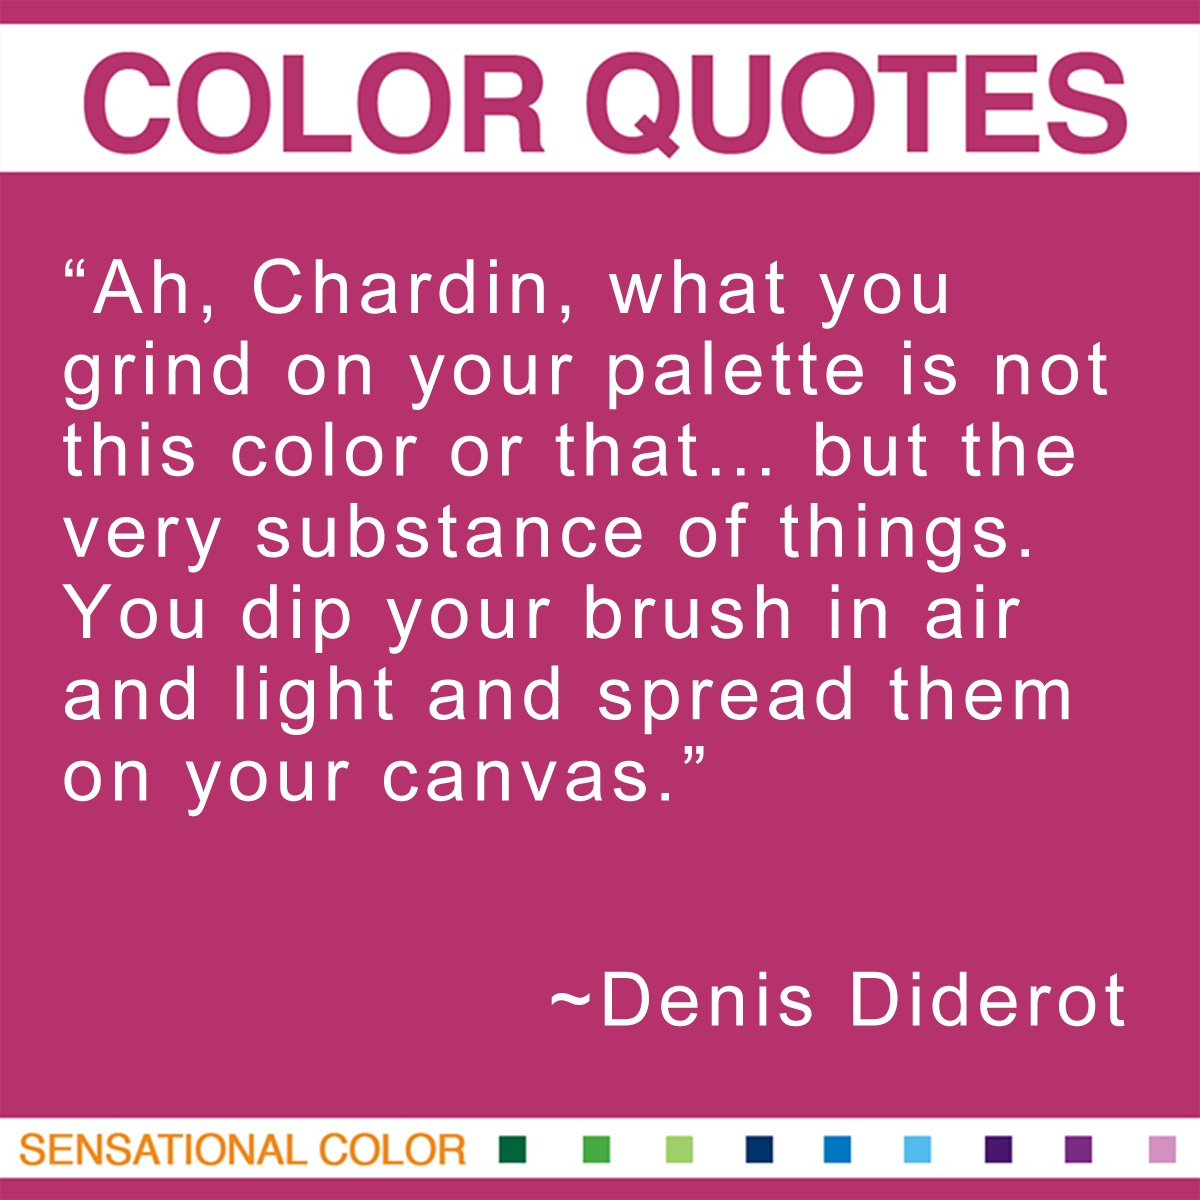 """Ah, Chardin, what you grind on your palette is not this color or that… but the very substance of things. You dip your brush in air and light and spread them on your canvas."" - Denis Diderot"